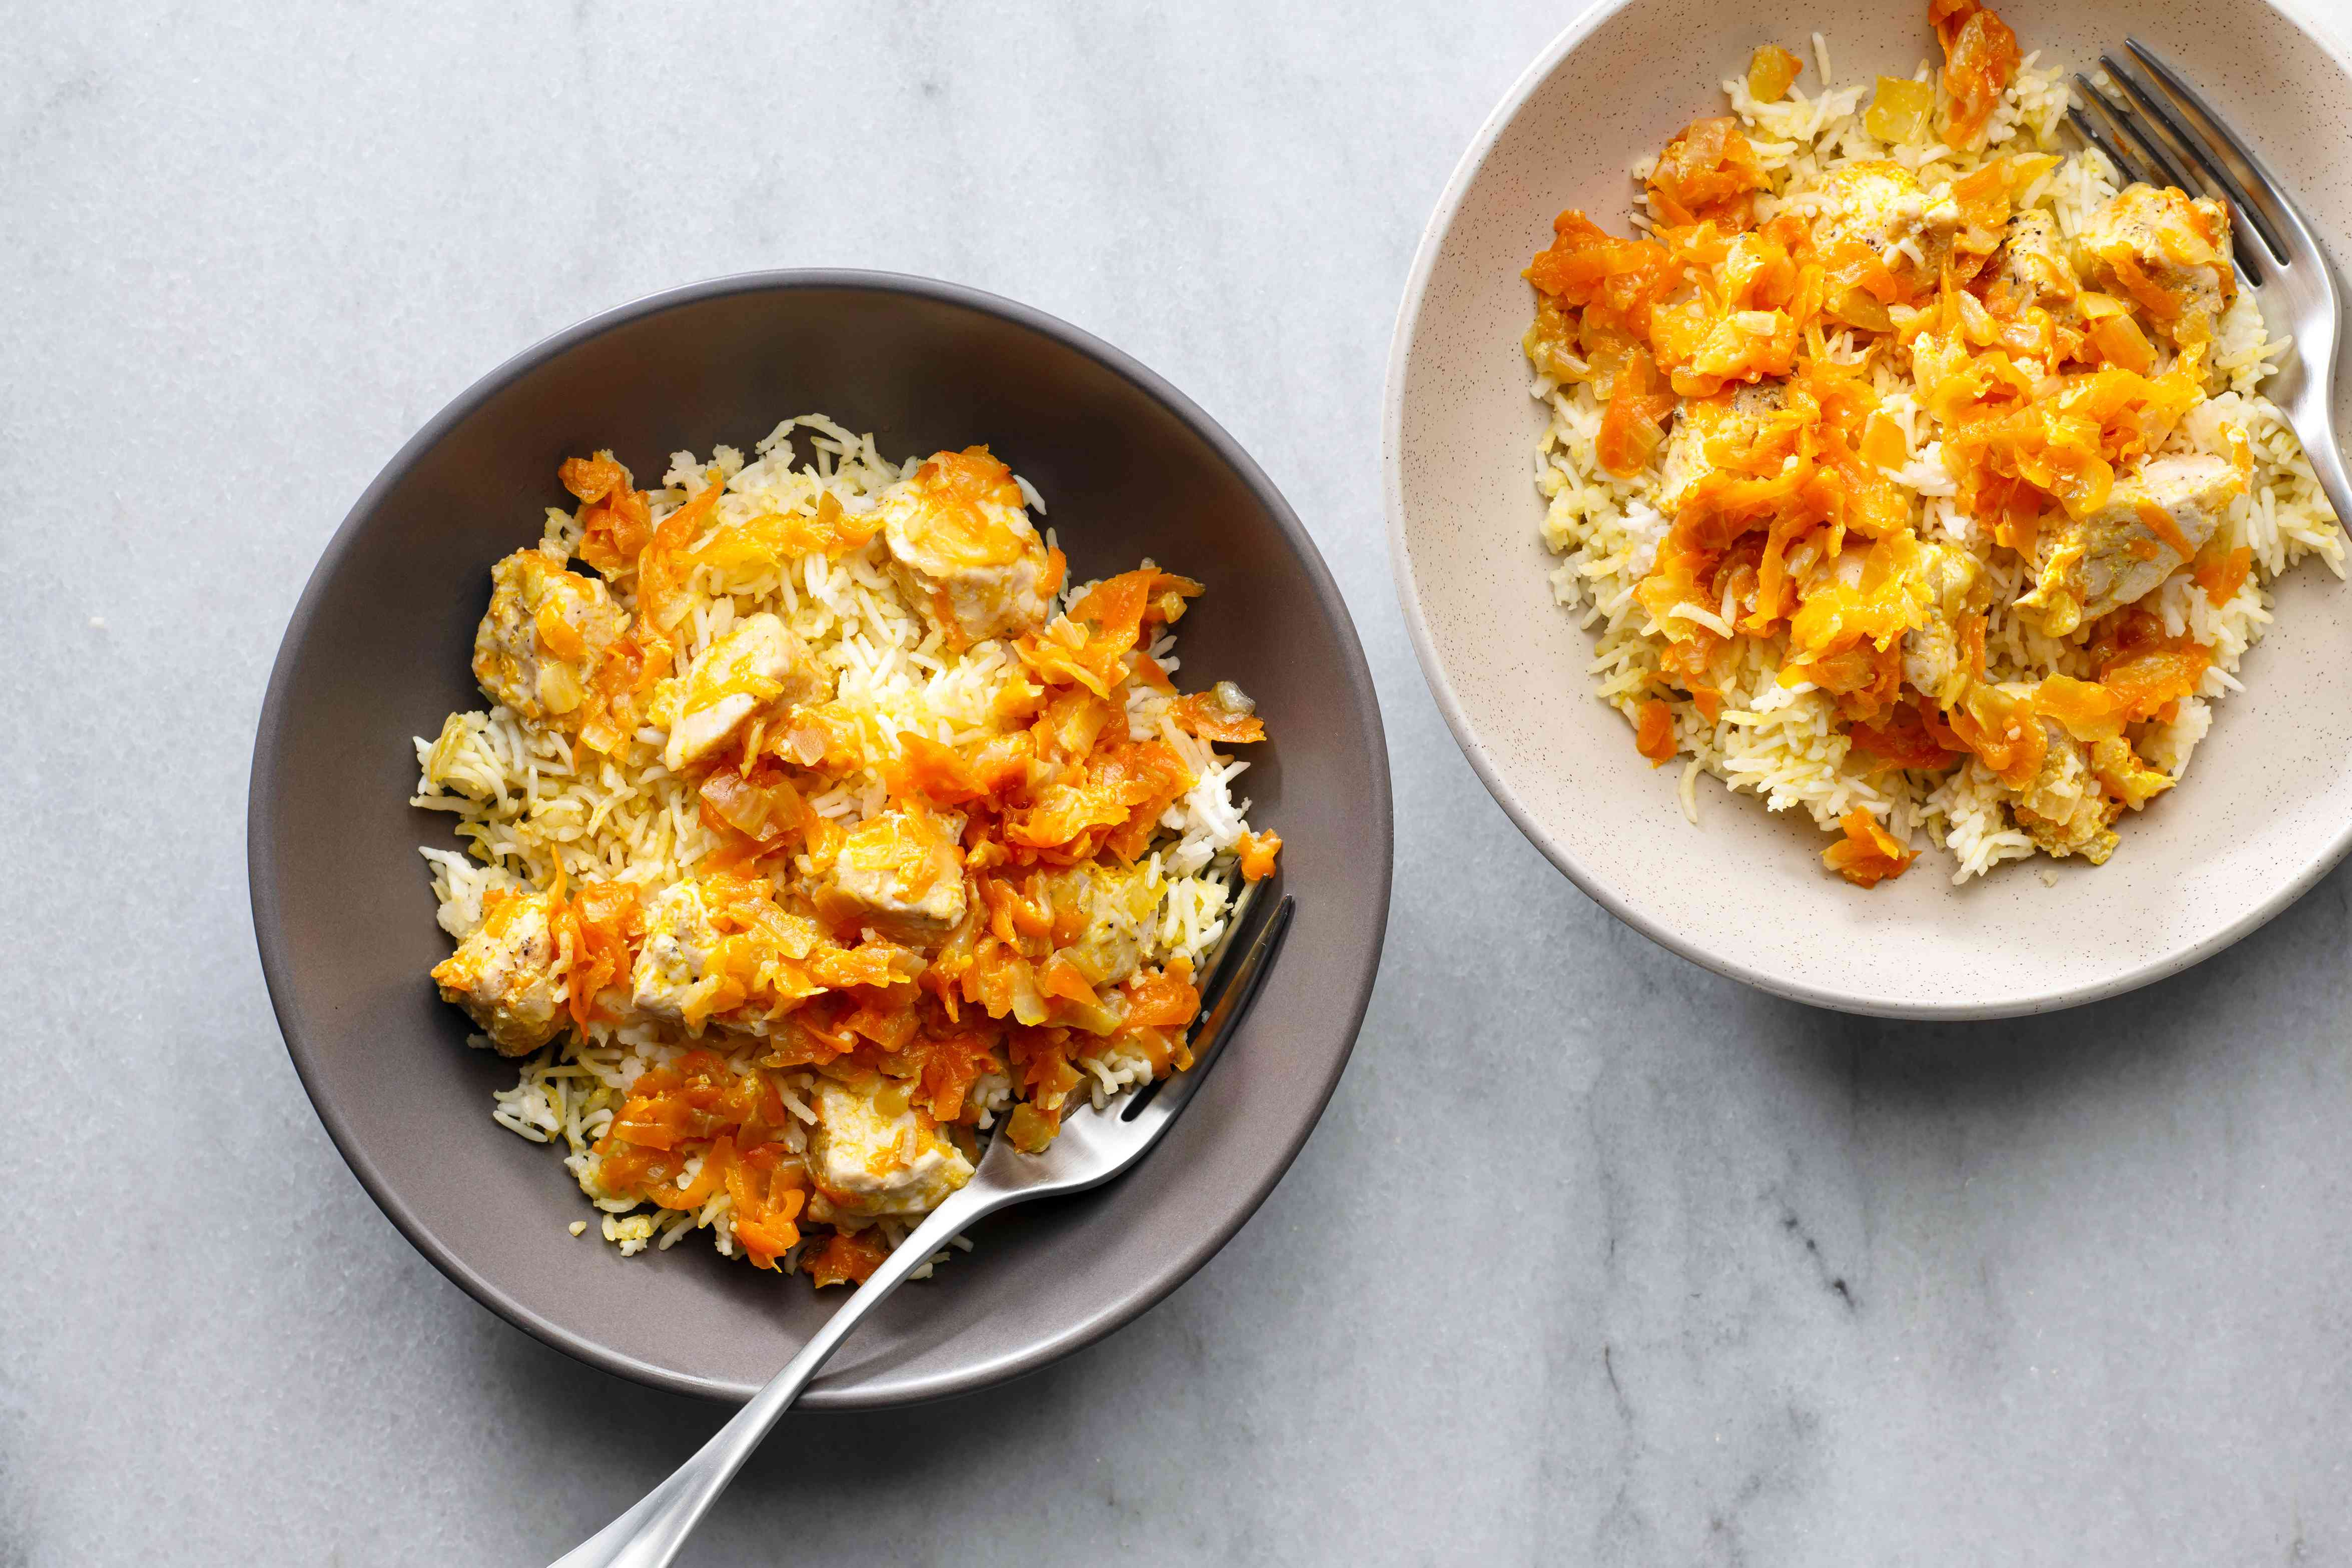 Bukharan Chicken and Rice Plov With Vegetables